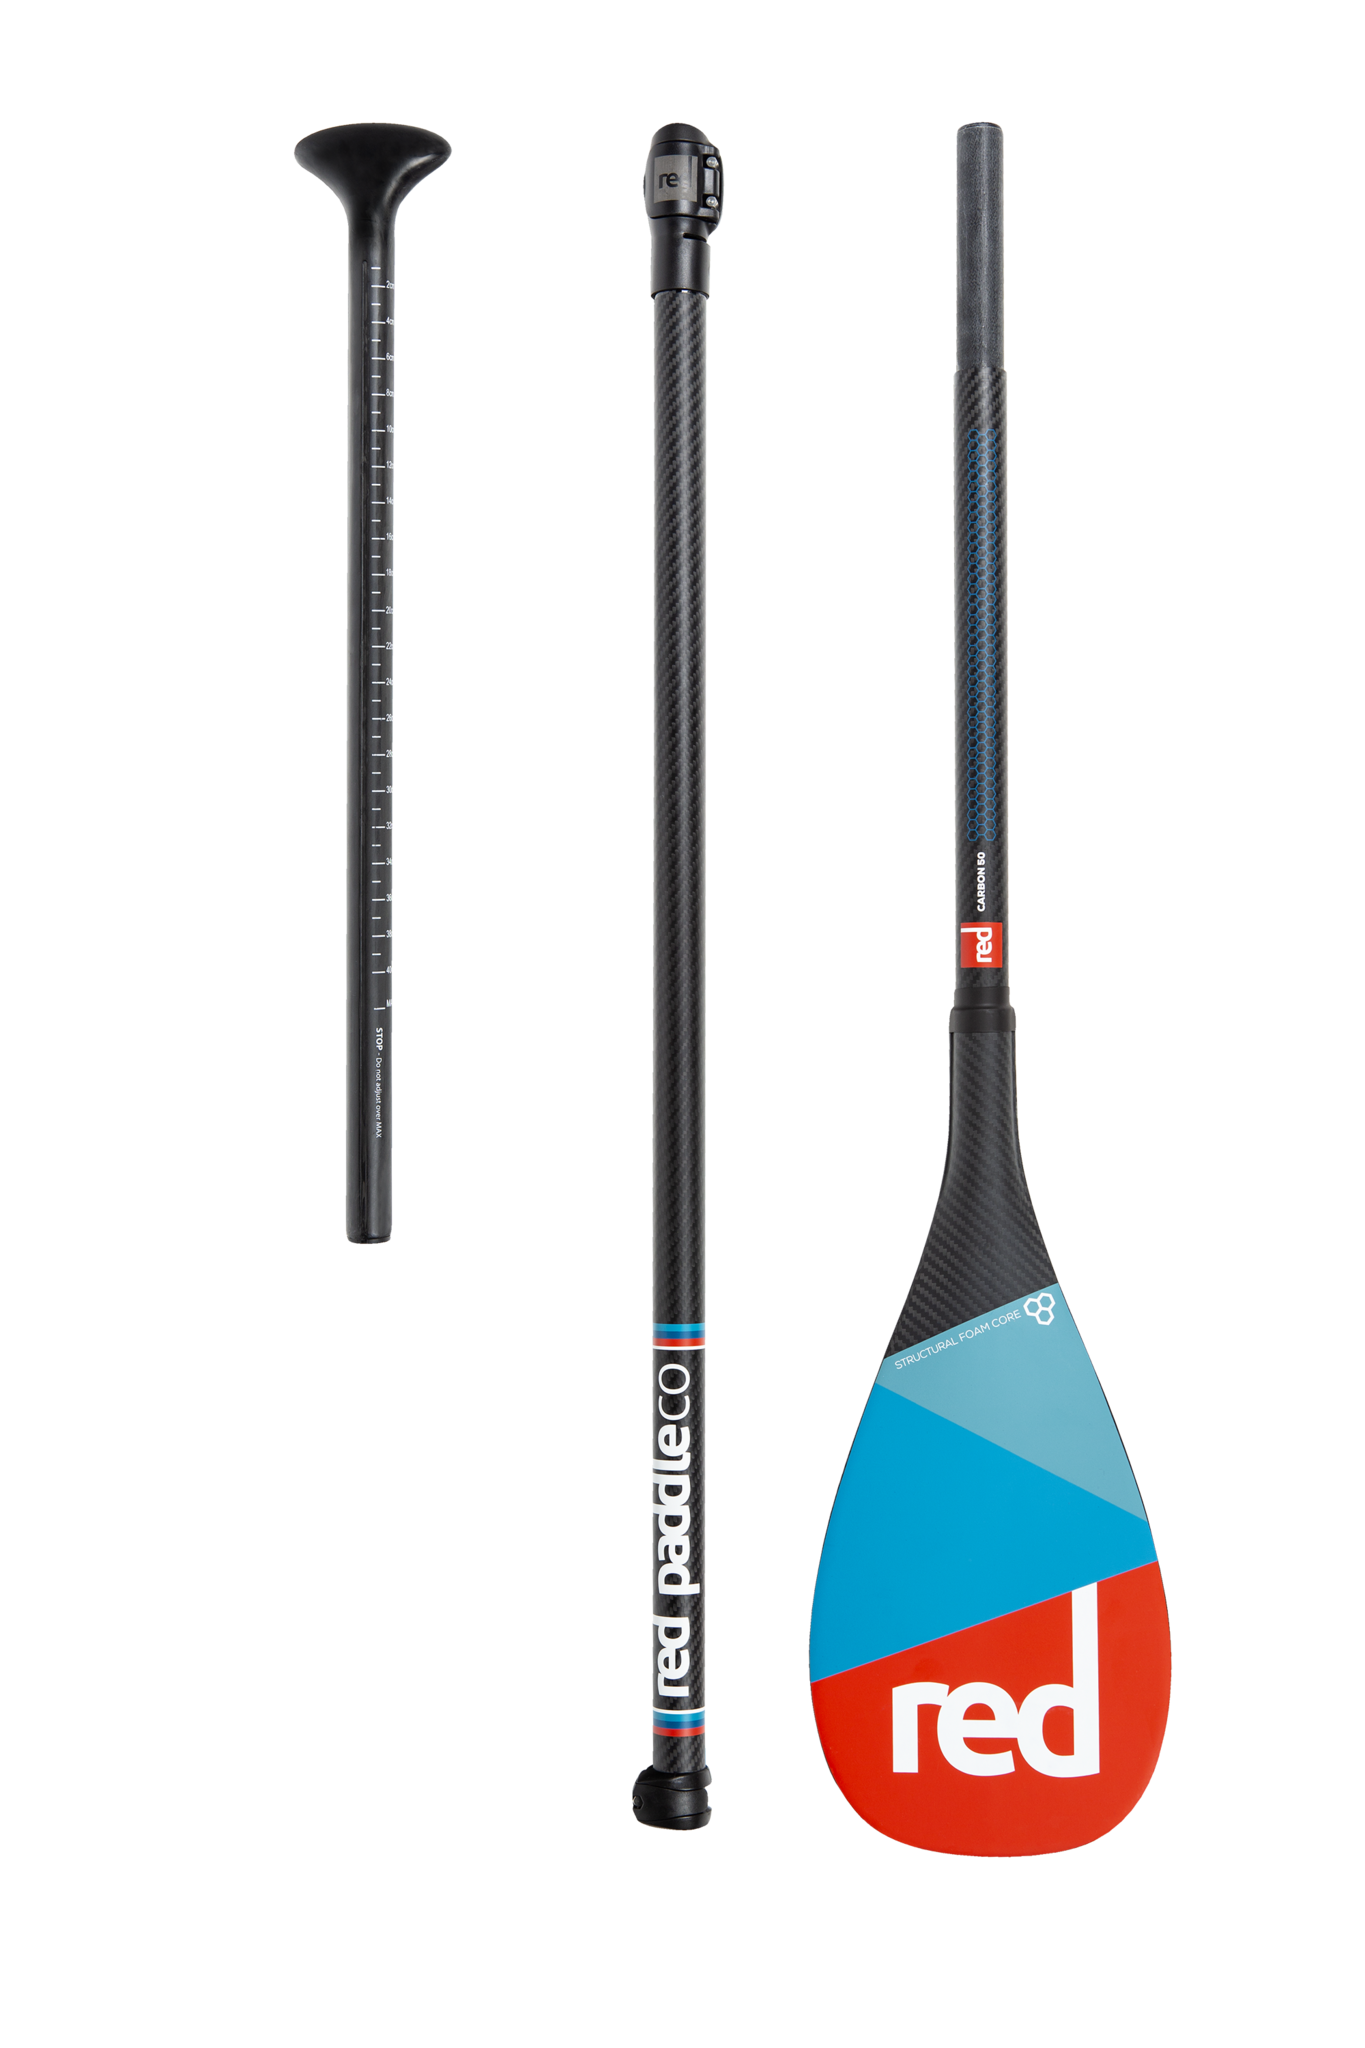 Red Paddle Co Red Paddle Carbon 50 paddle